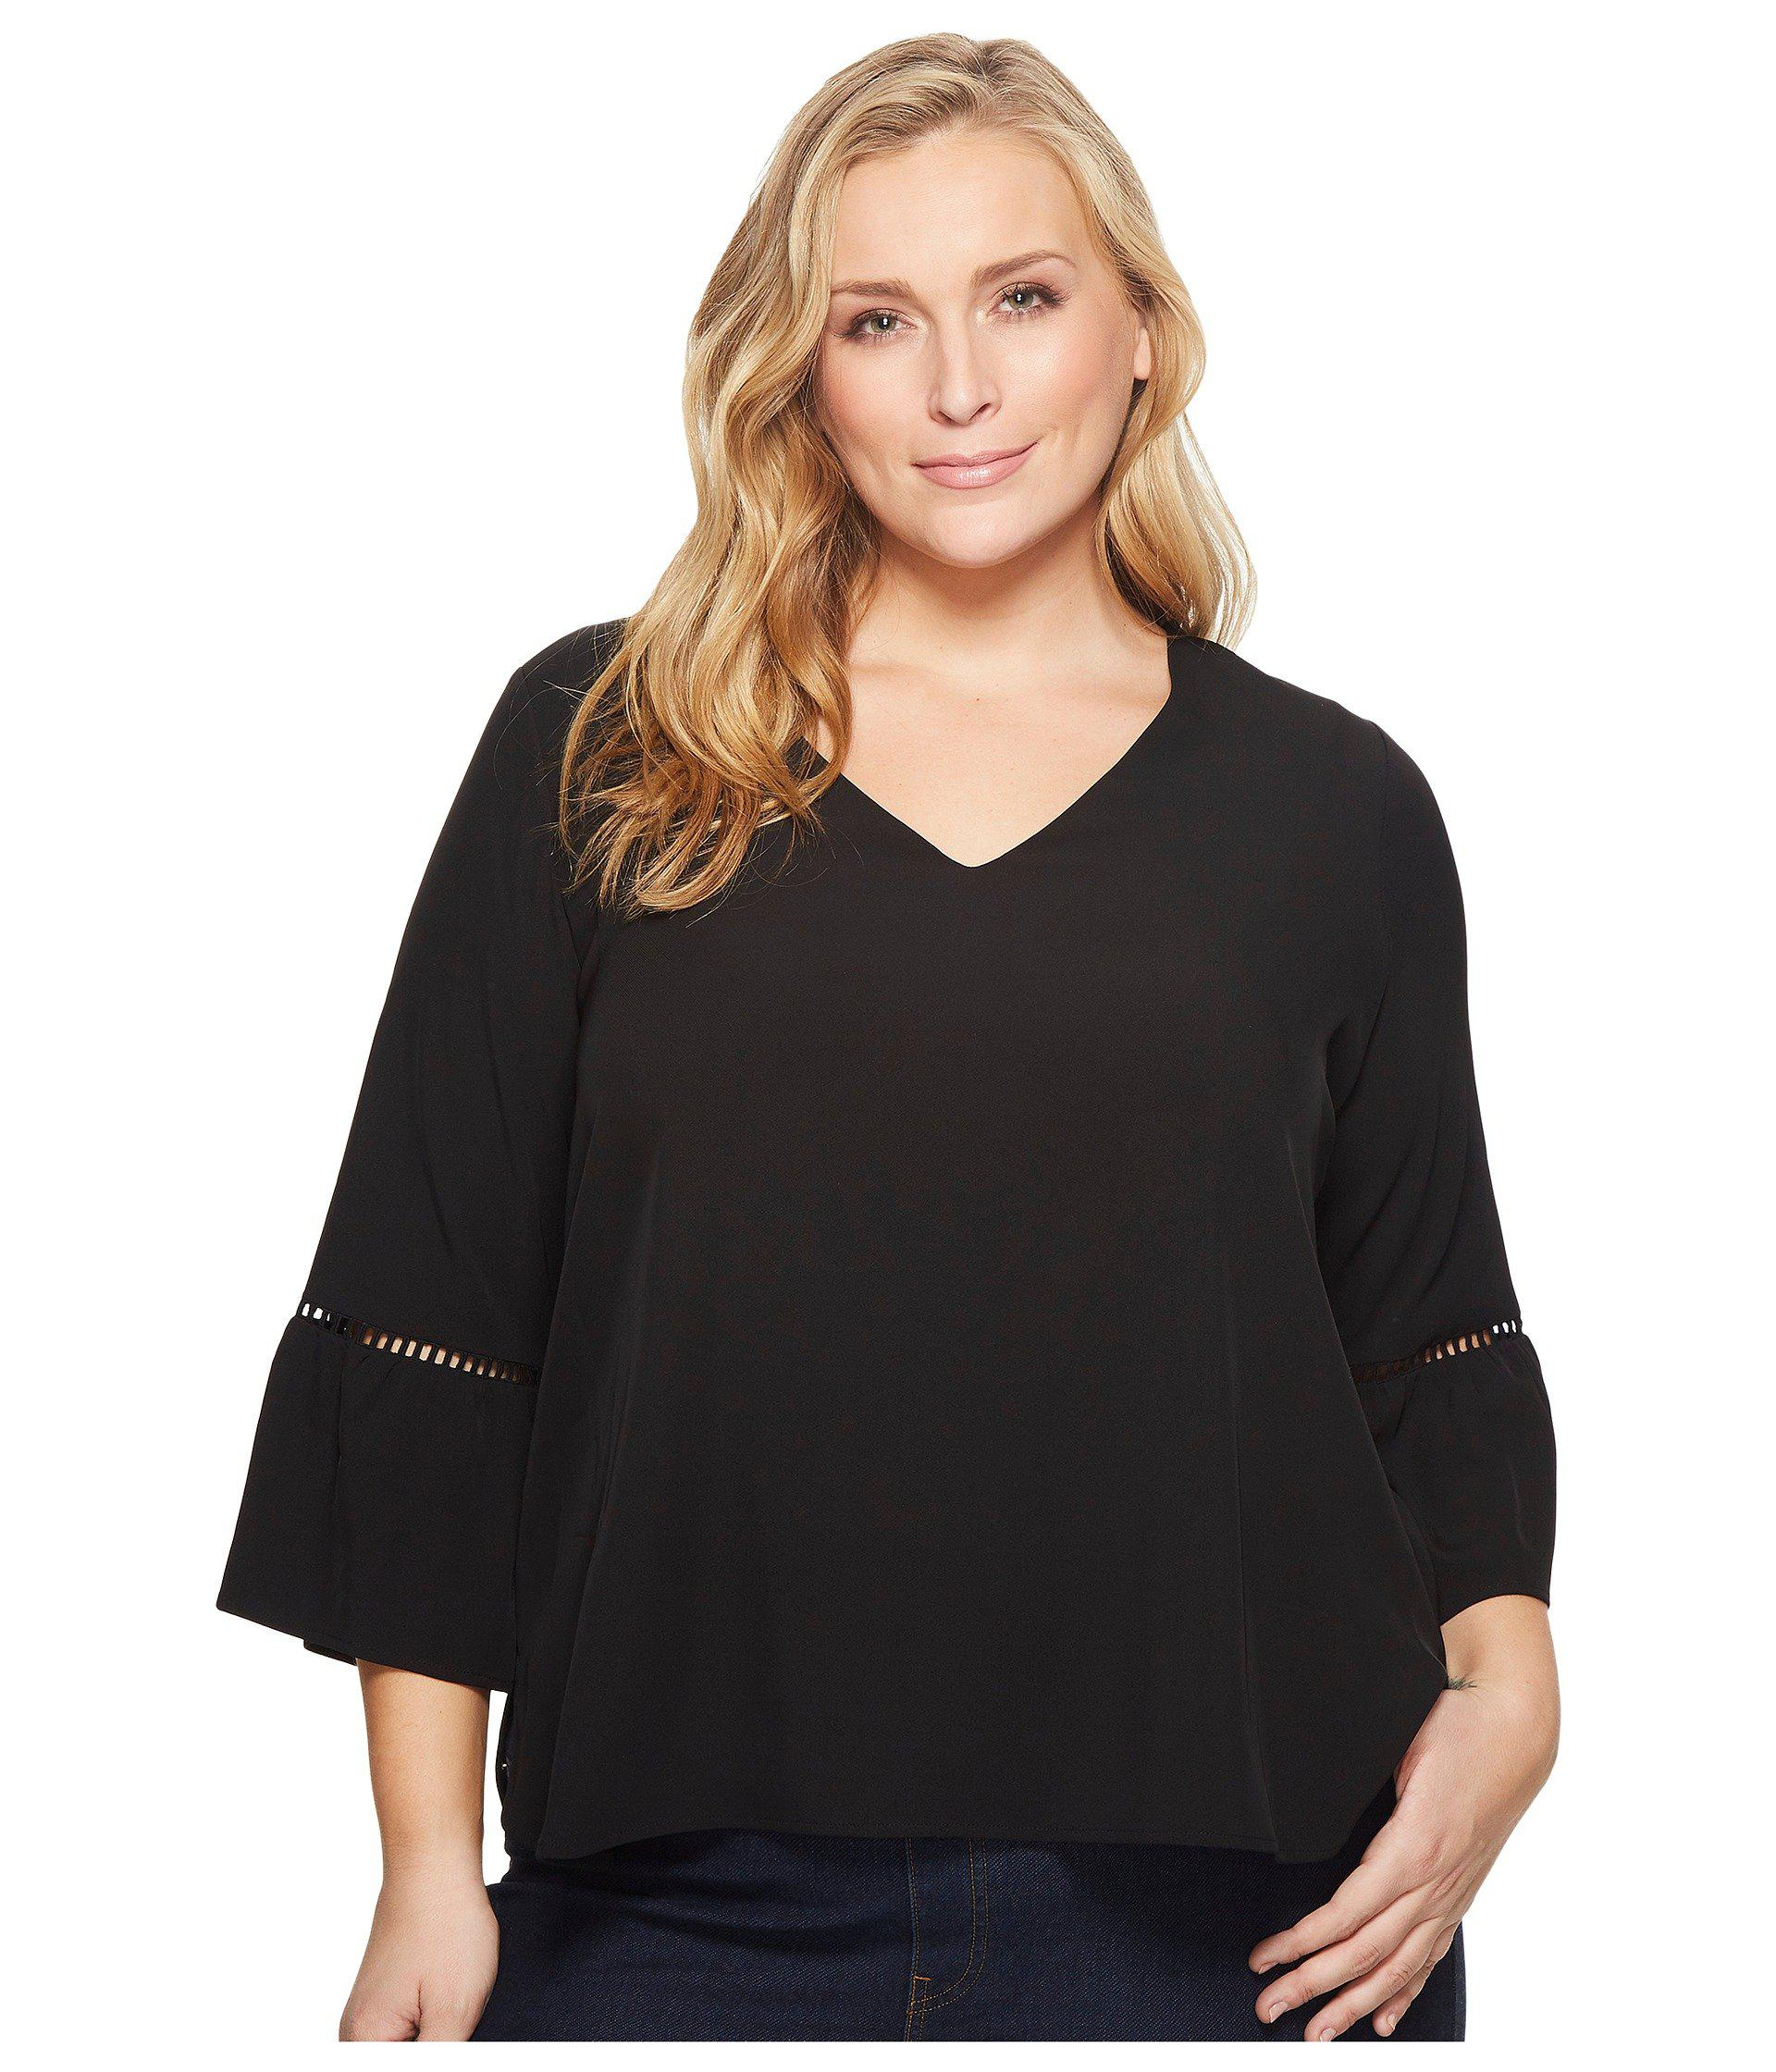 69bee43d53c Lyst - Calvin Klein Plus Size Bell Sleeve W  Lace Detail in Black ...